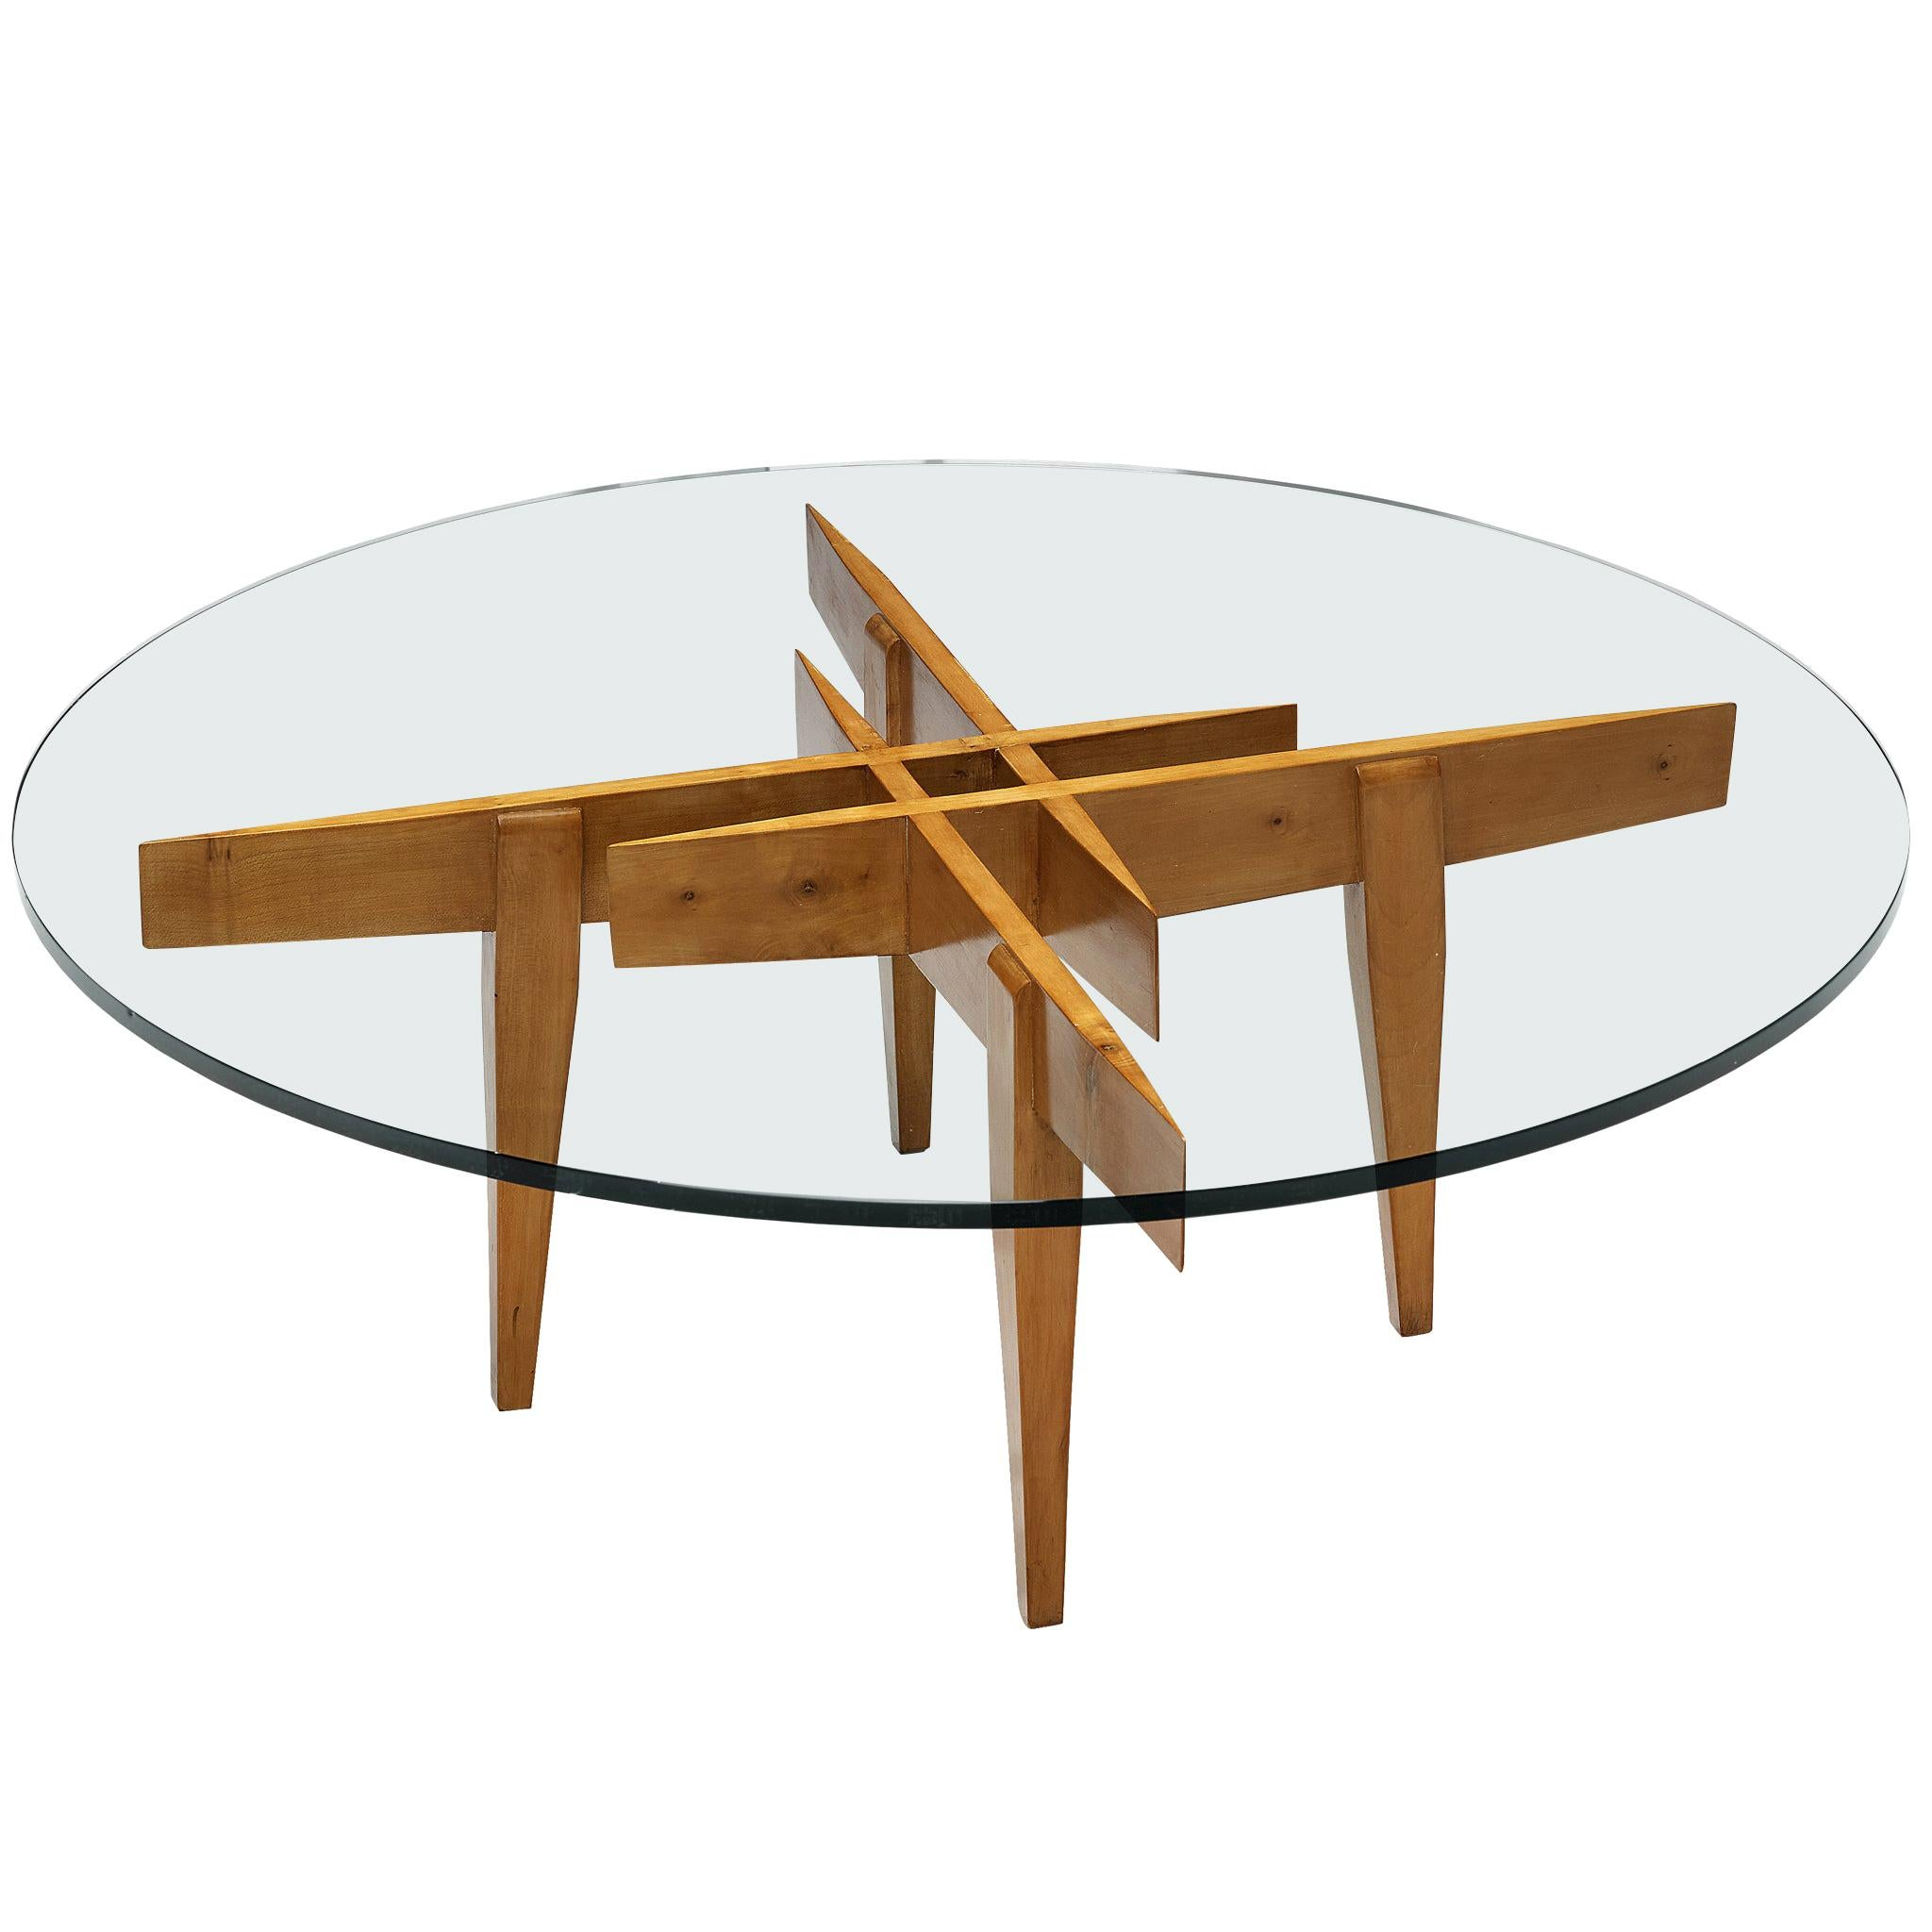 Gio Ponti for Giordano Chiesa Sculptural Coffee Table in Maple